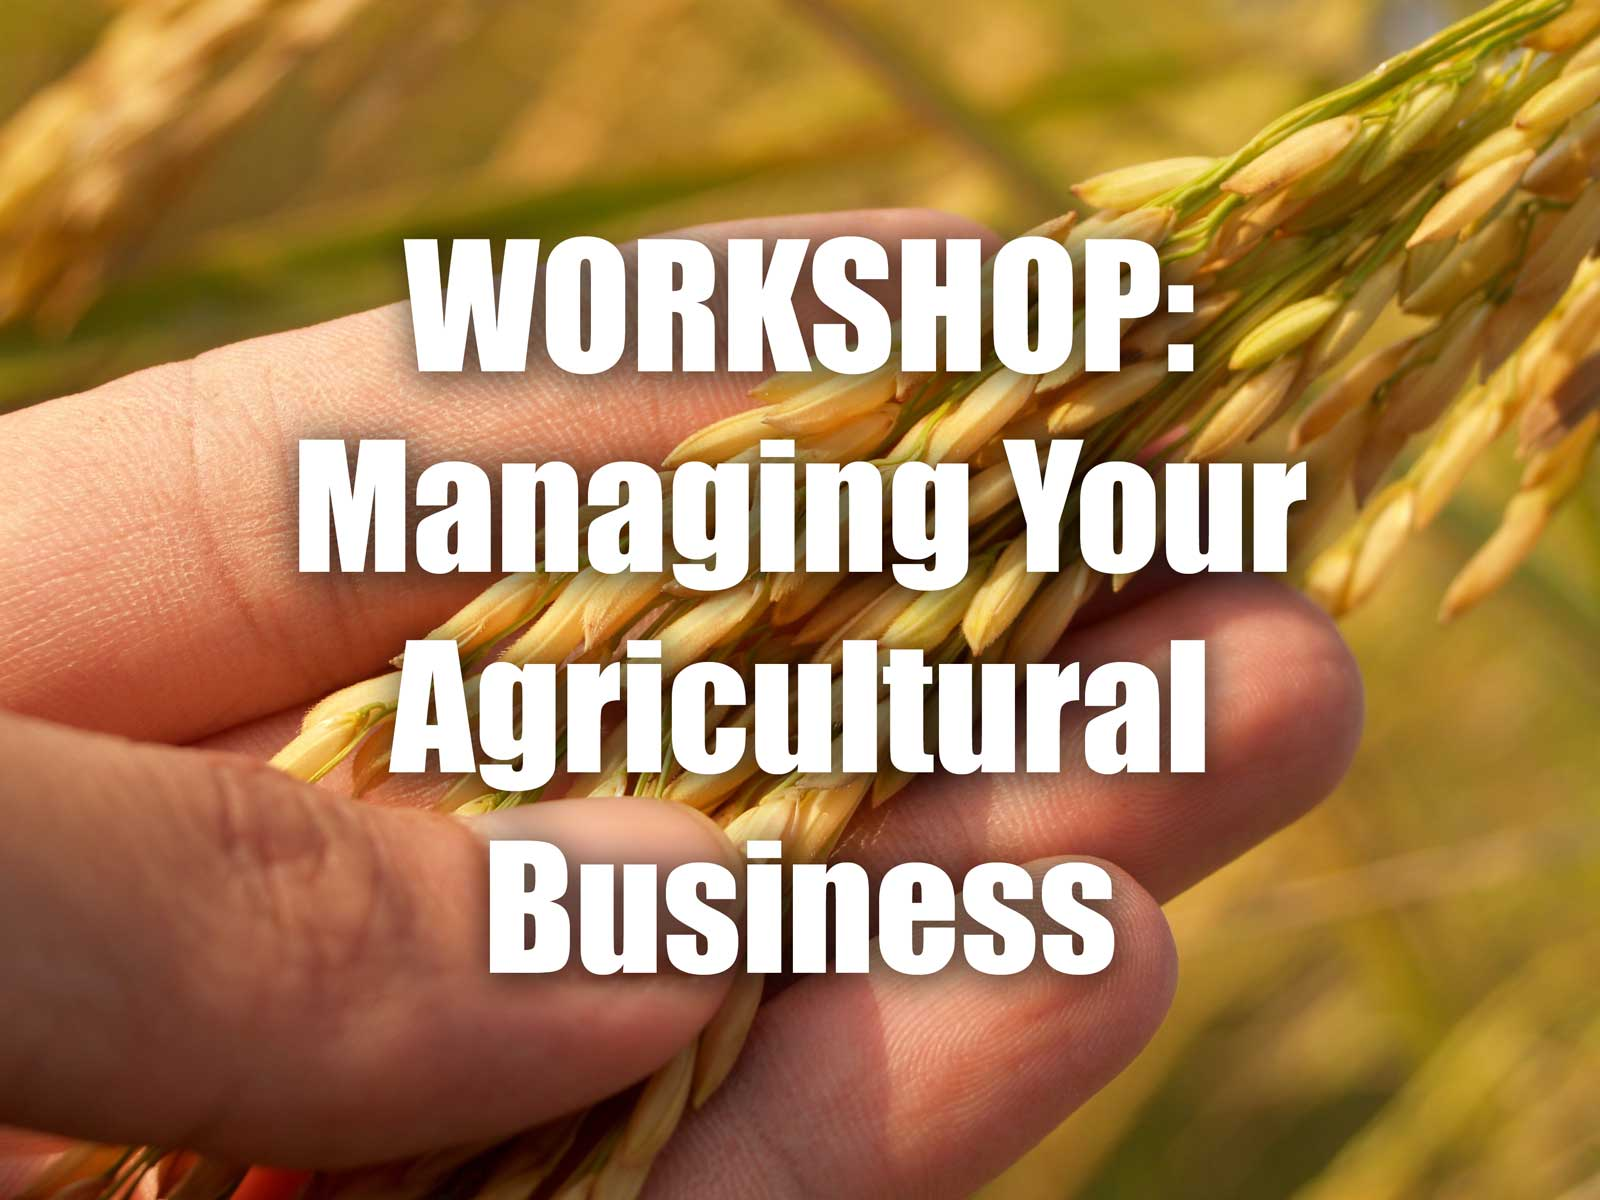 AgriculturalBusinessWorkshop